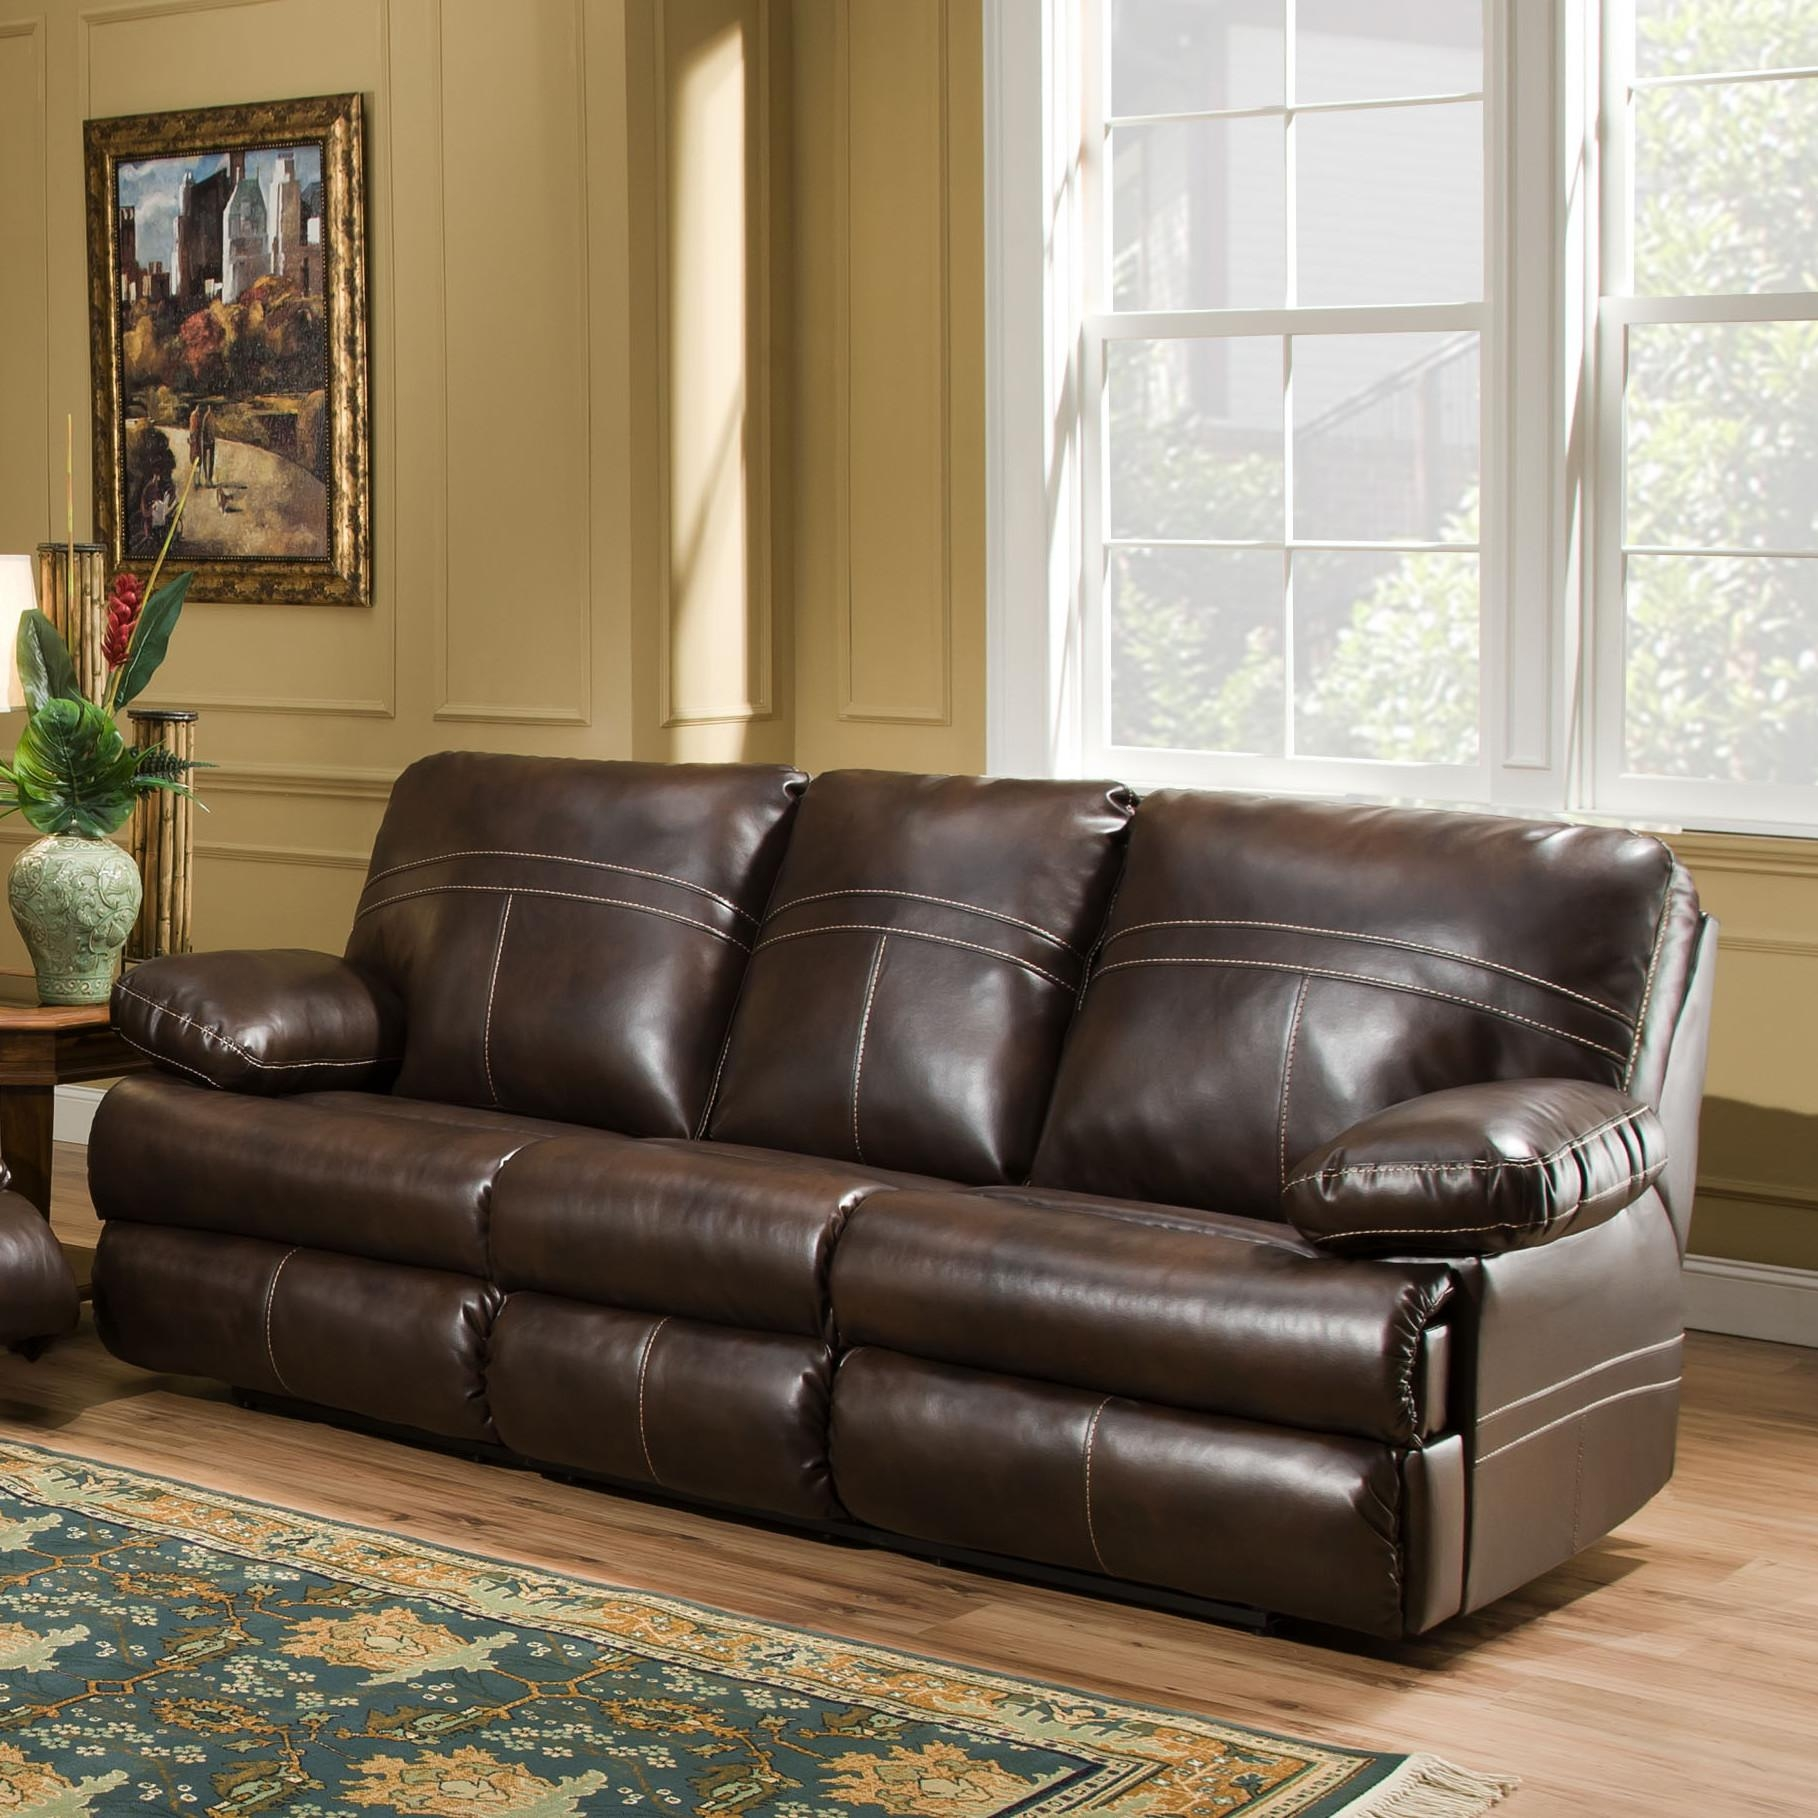 Furniture: Simmons Sectional For Comfortable Seating — Threestems In Big Lots Simmons Sectional Sofas (Image 8 of 20)